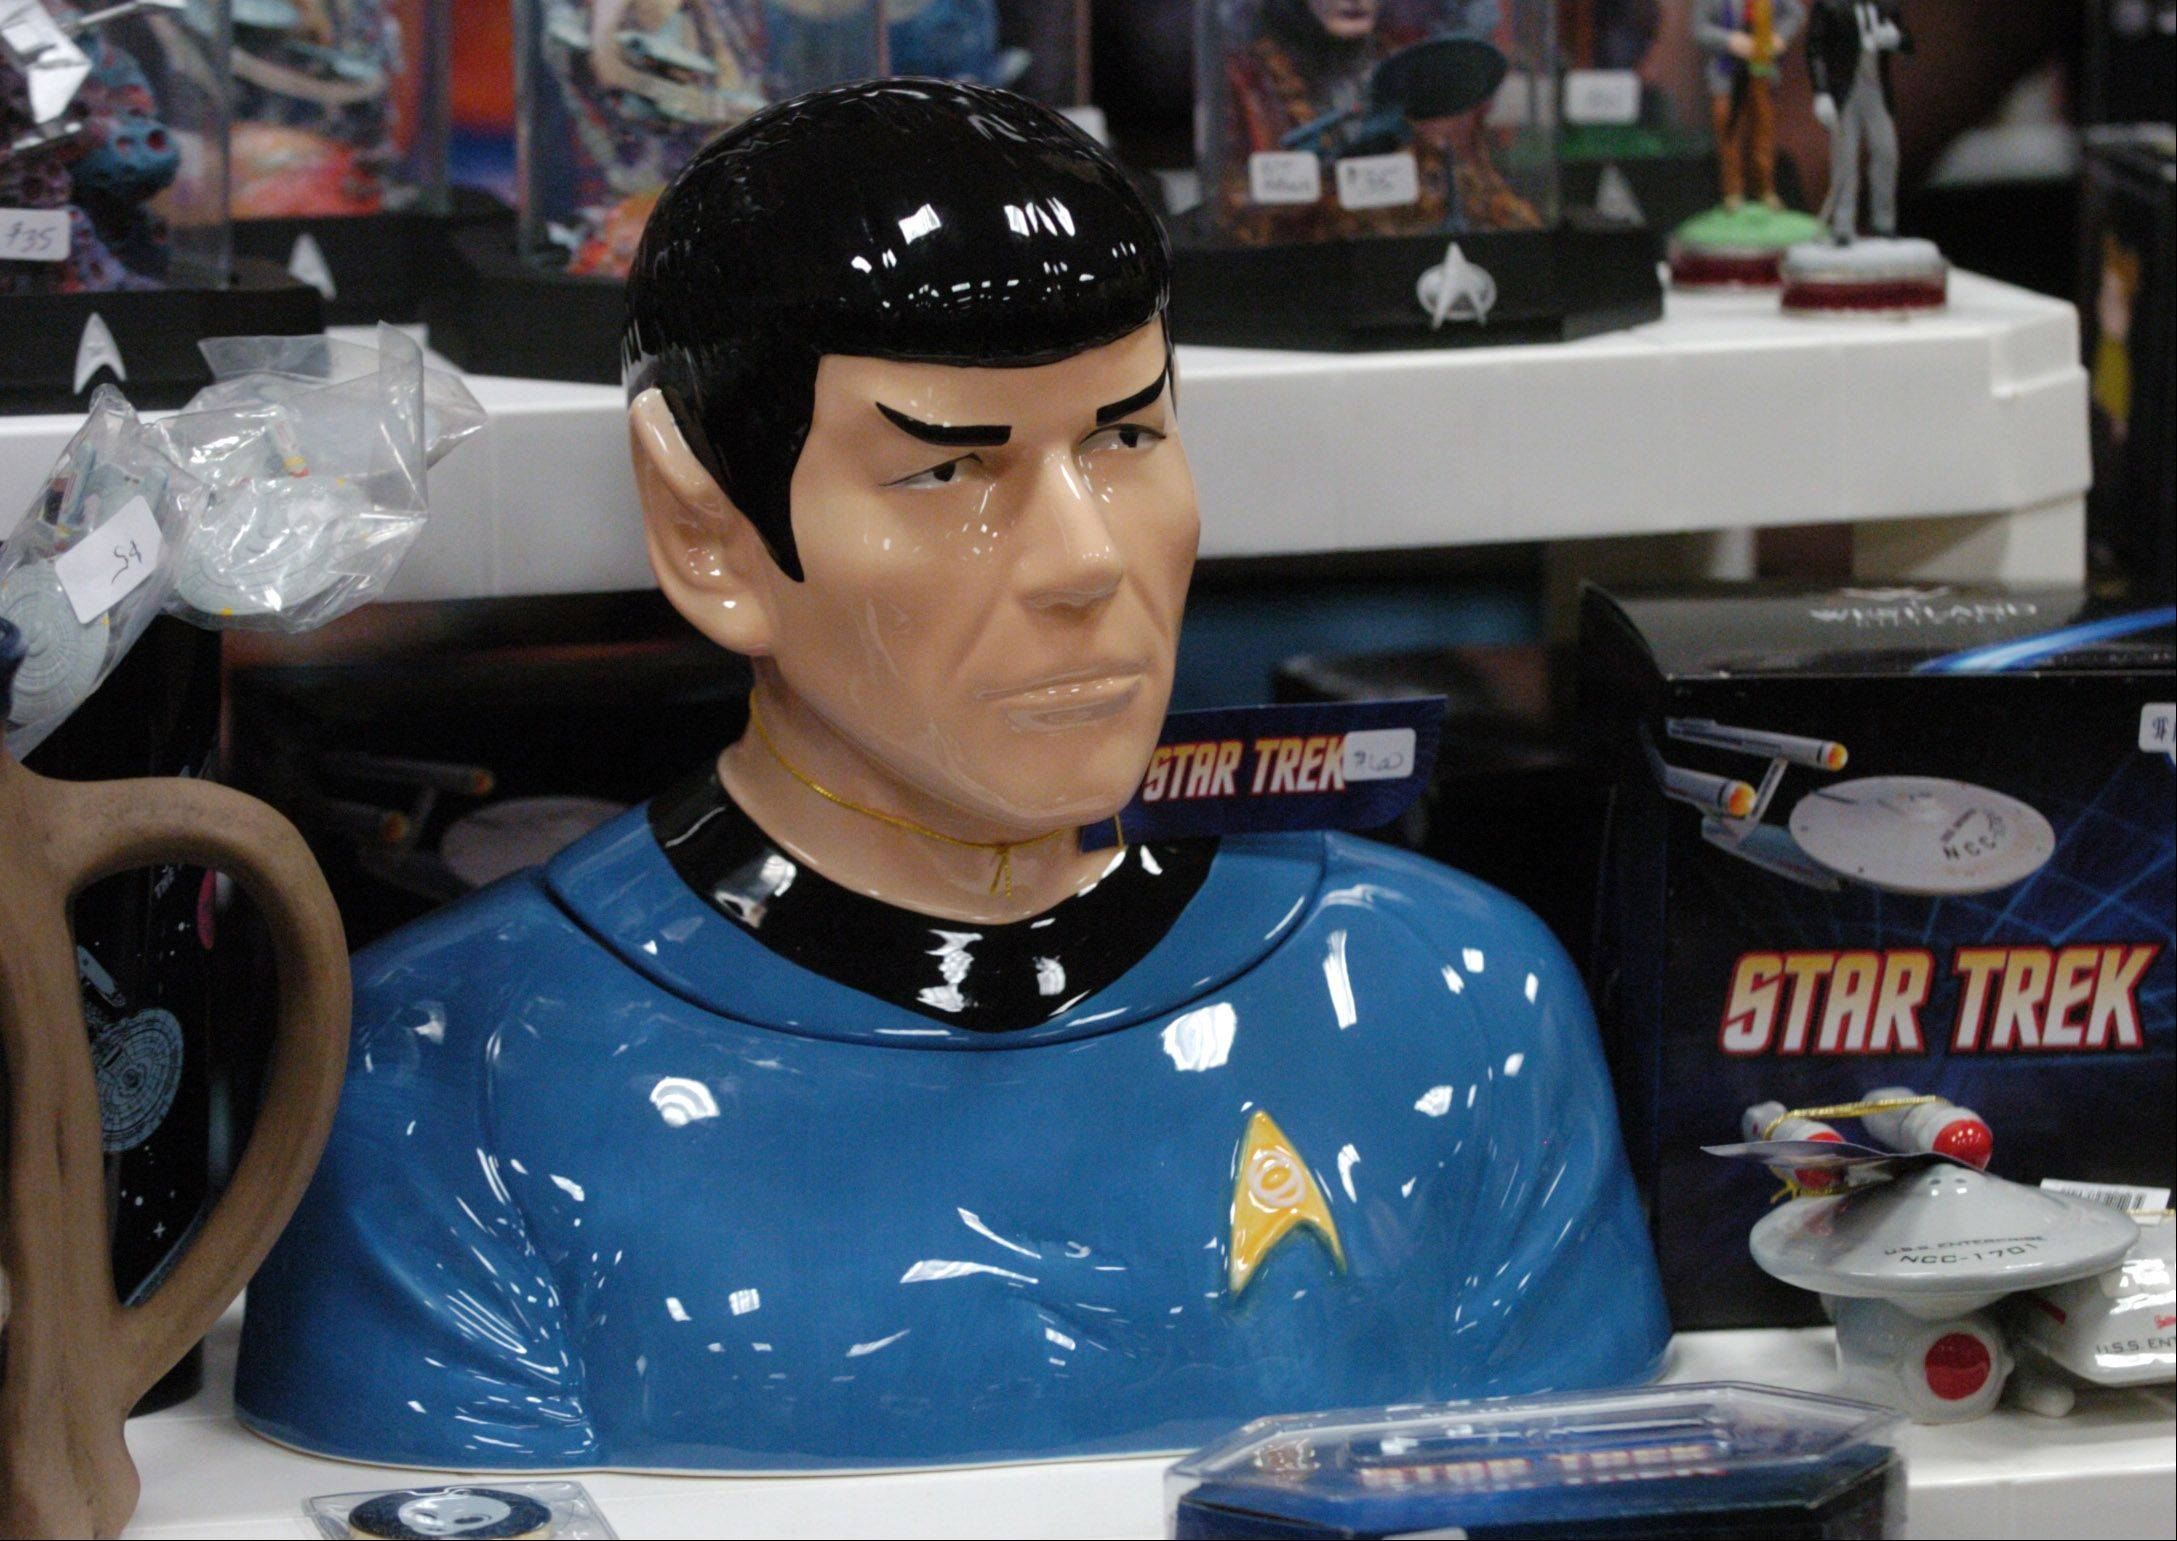 Mr. Spock bust among the items being sold during the Star Trek convention at the Westin O'Hare in Rosemont Friday.